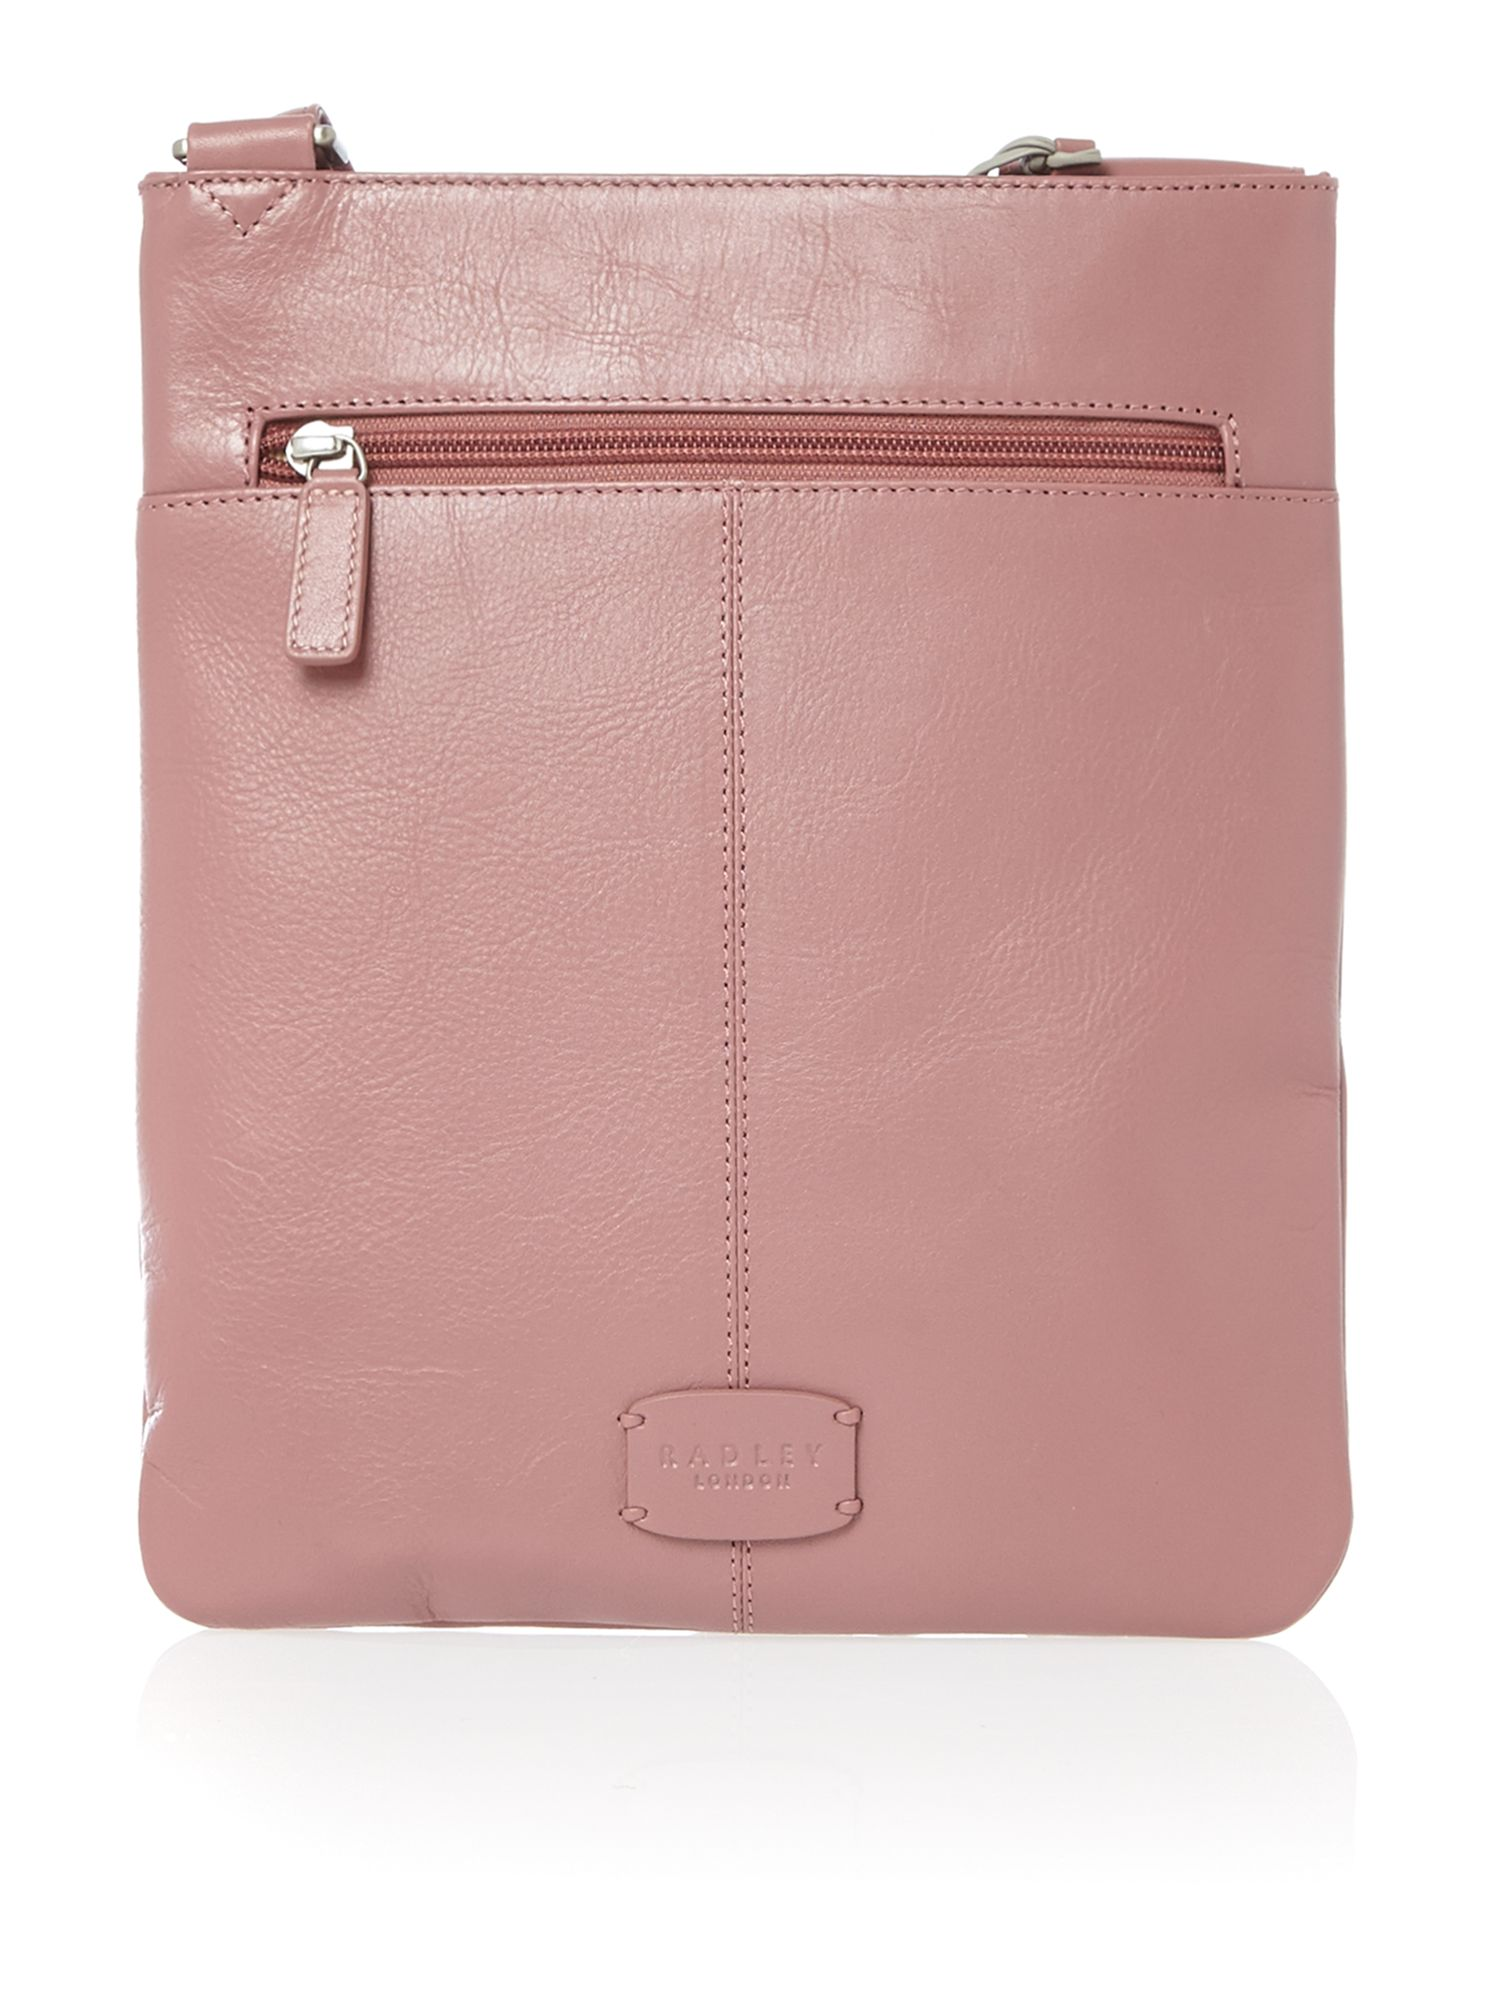 Pocket bag small ziptop xbody leather bag pink